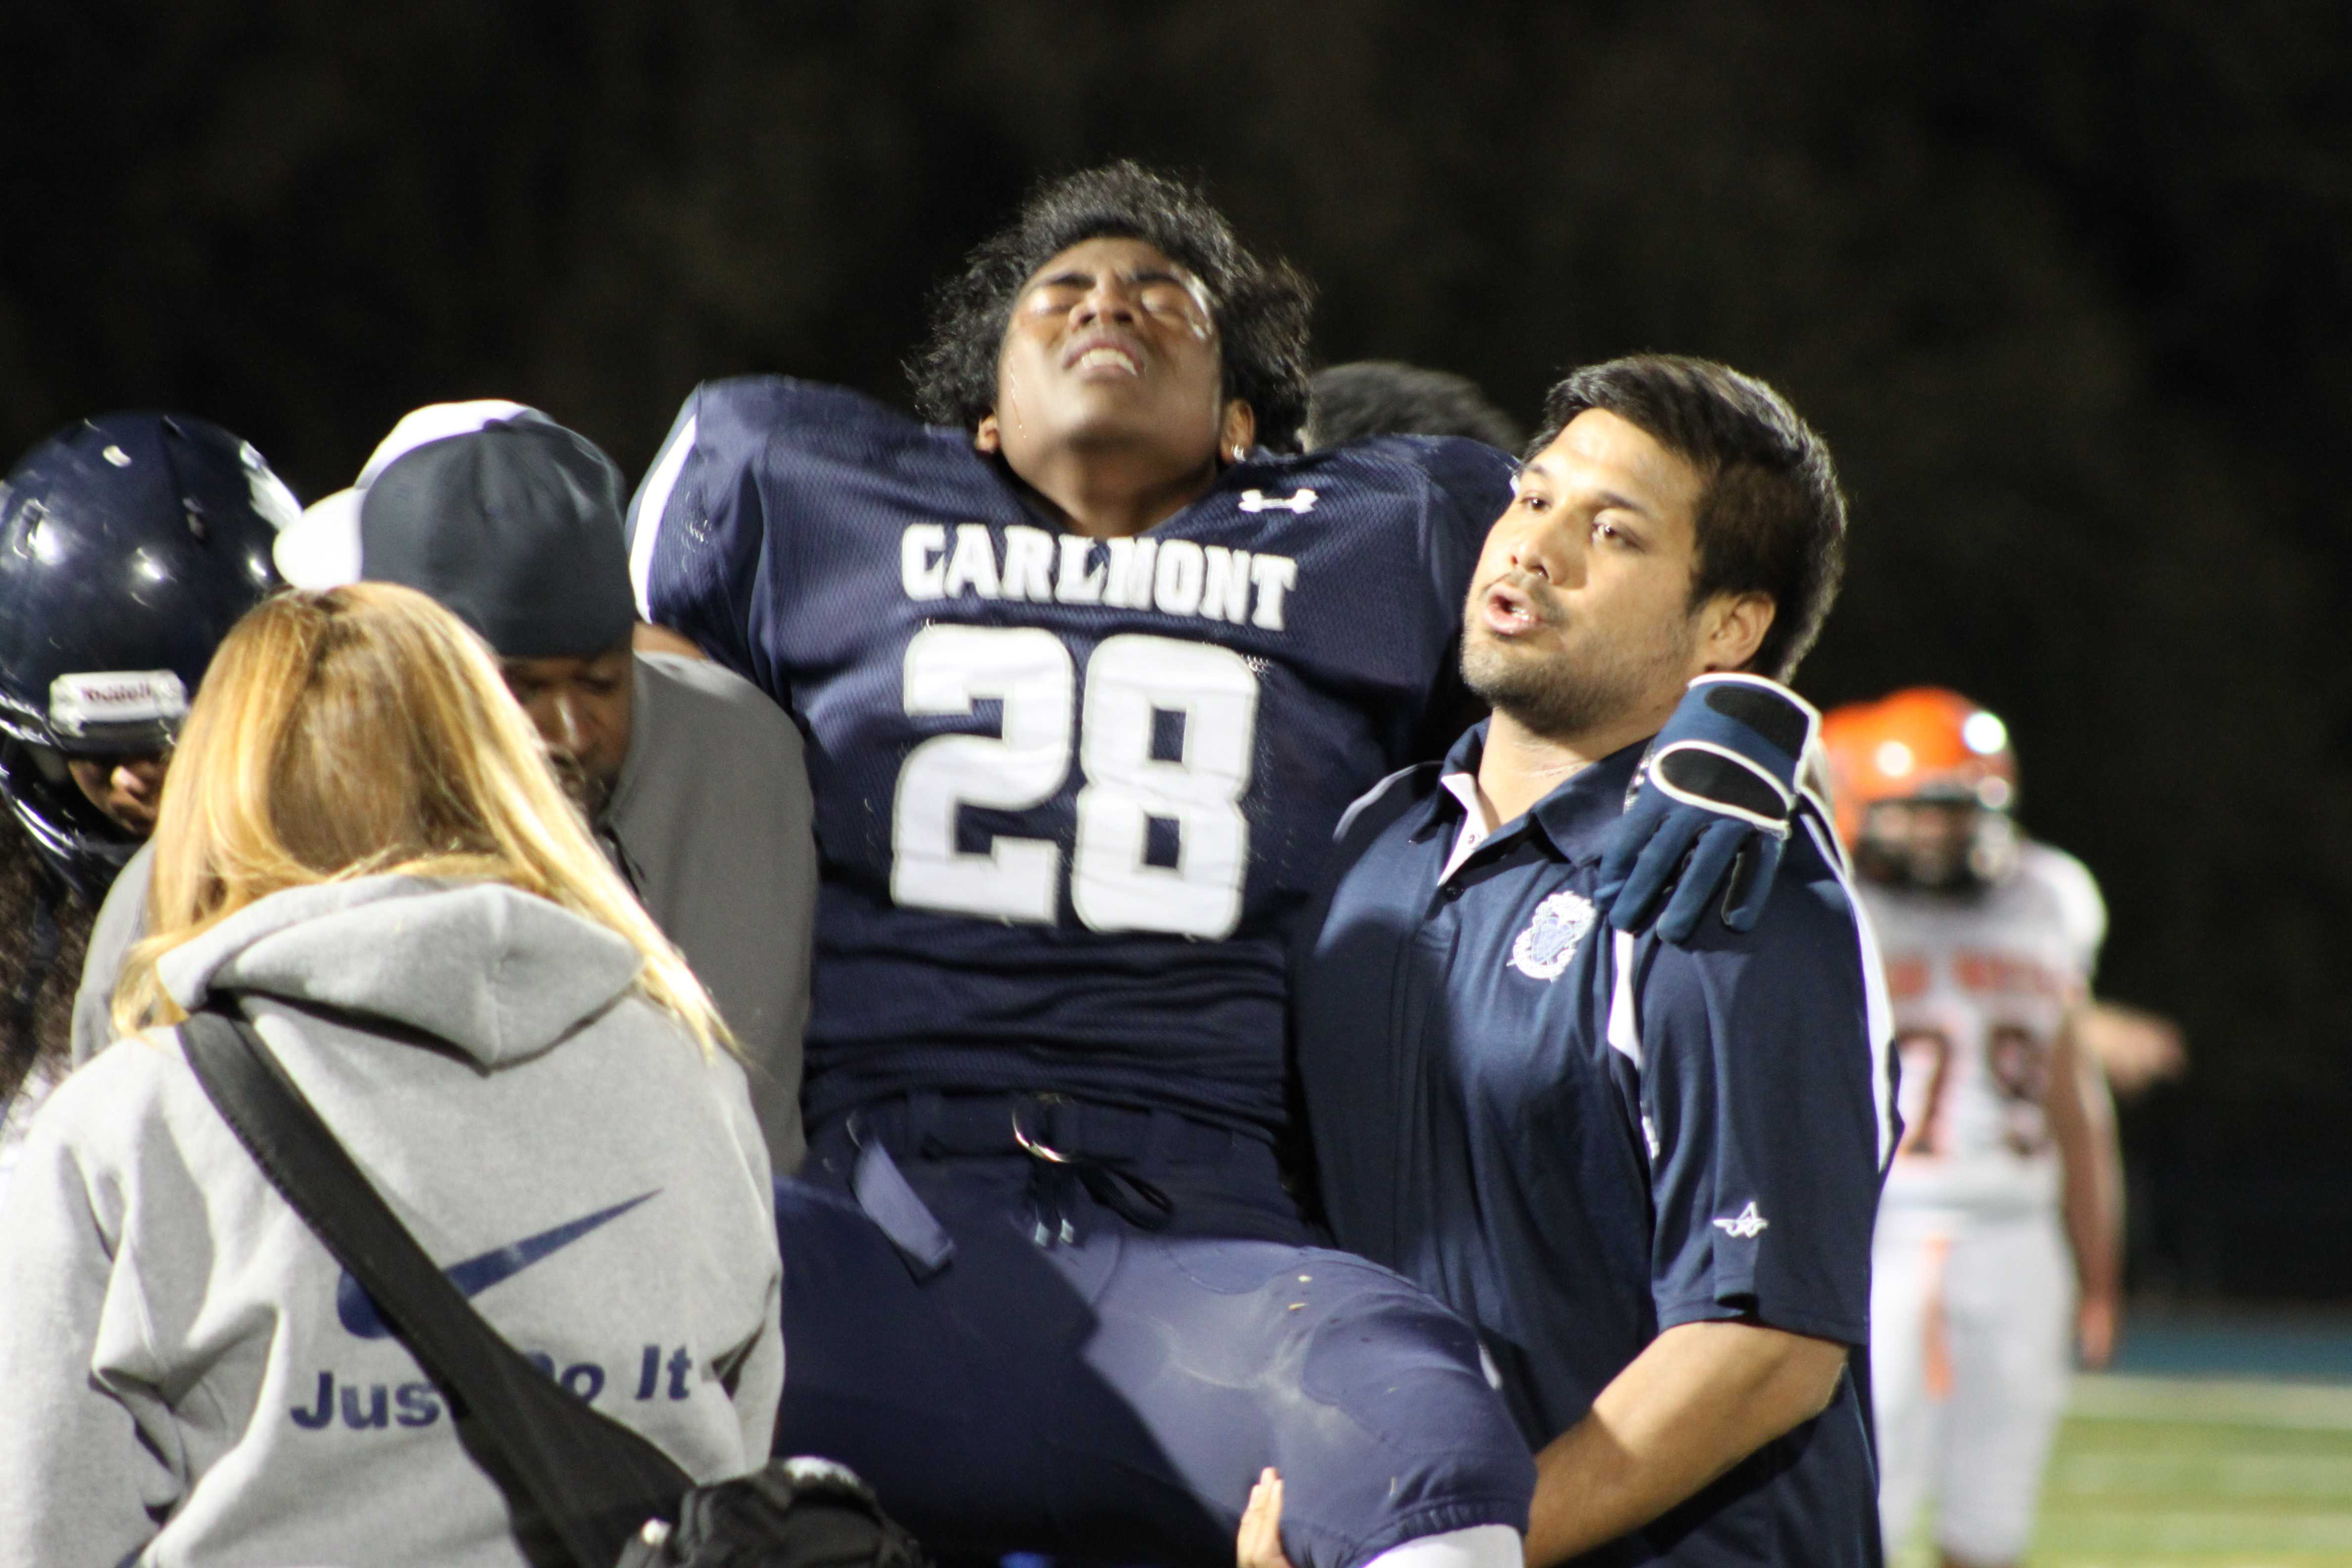 Dominic Blanks (28) getting carried off the field after being injured in the 2nd quarter.